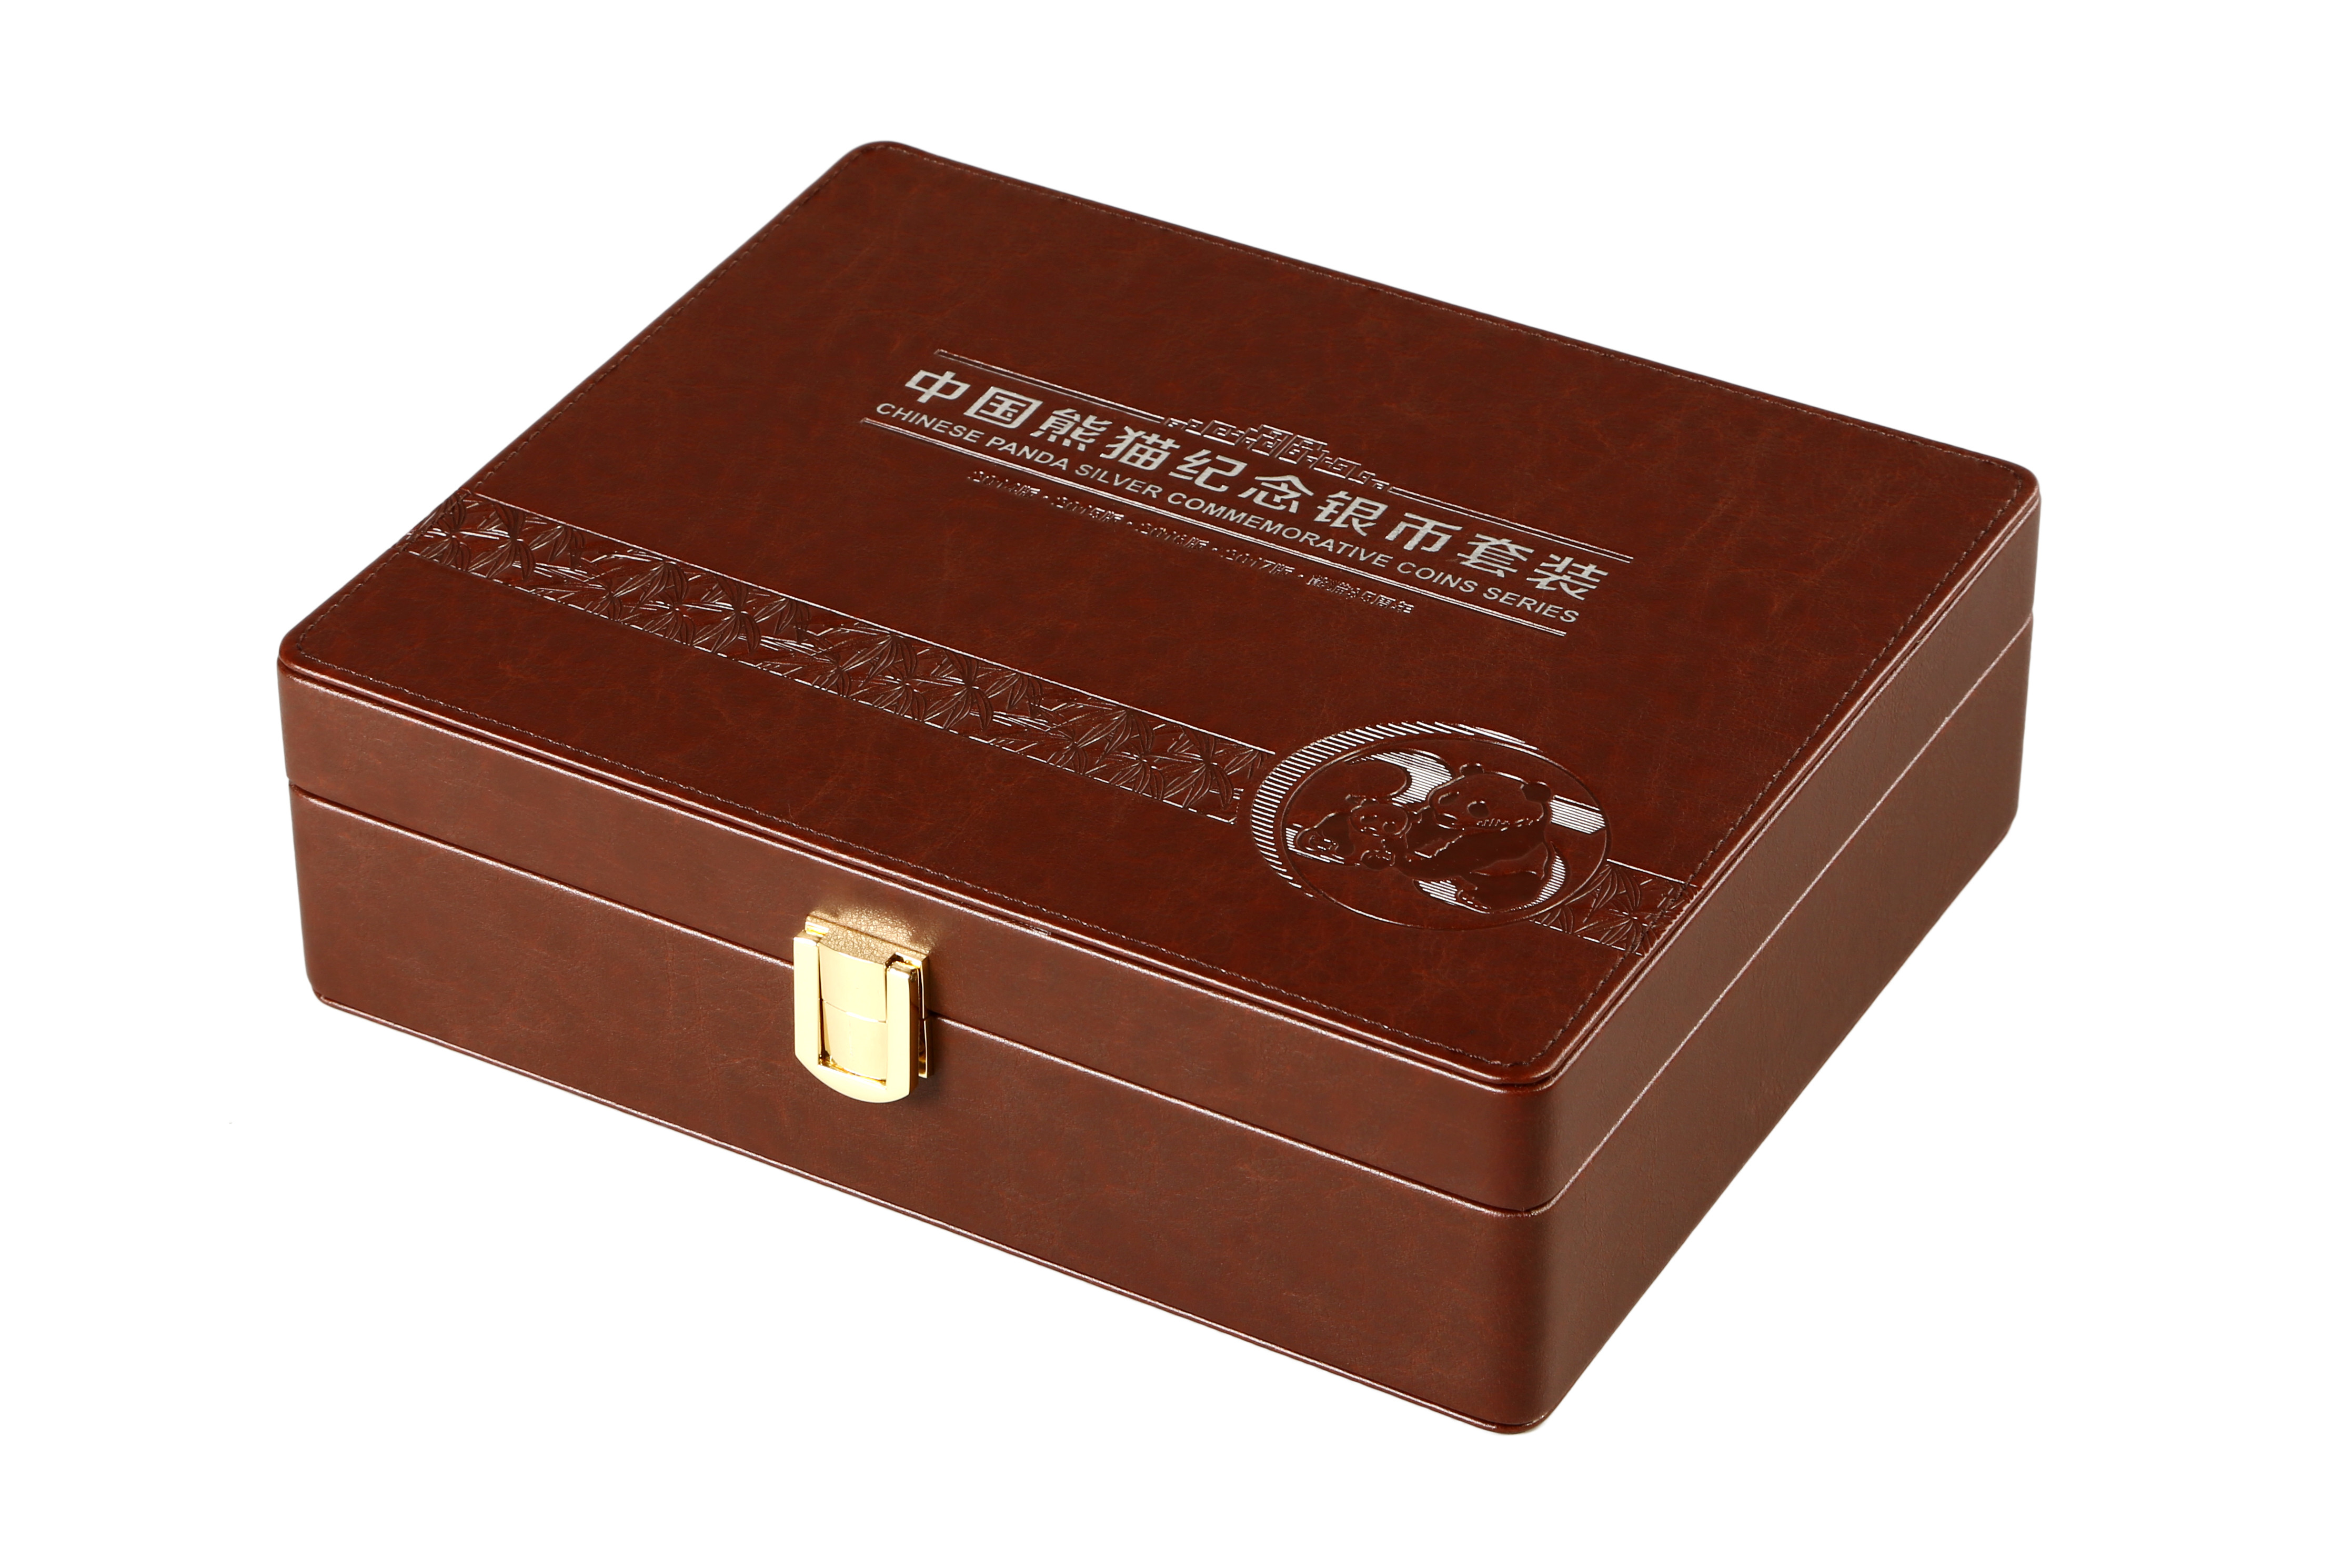 Luxury Brown PU Leather Wrapped Coin Collection Box and Commemorative Gift Packaging